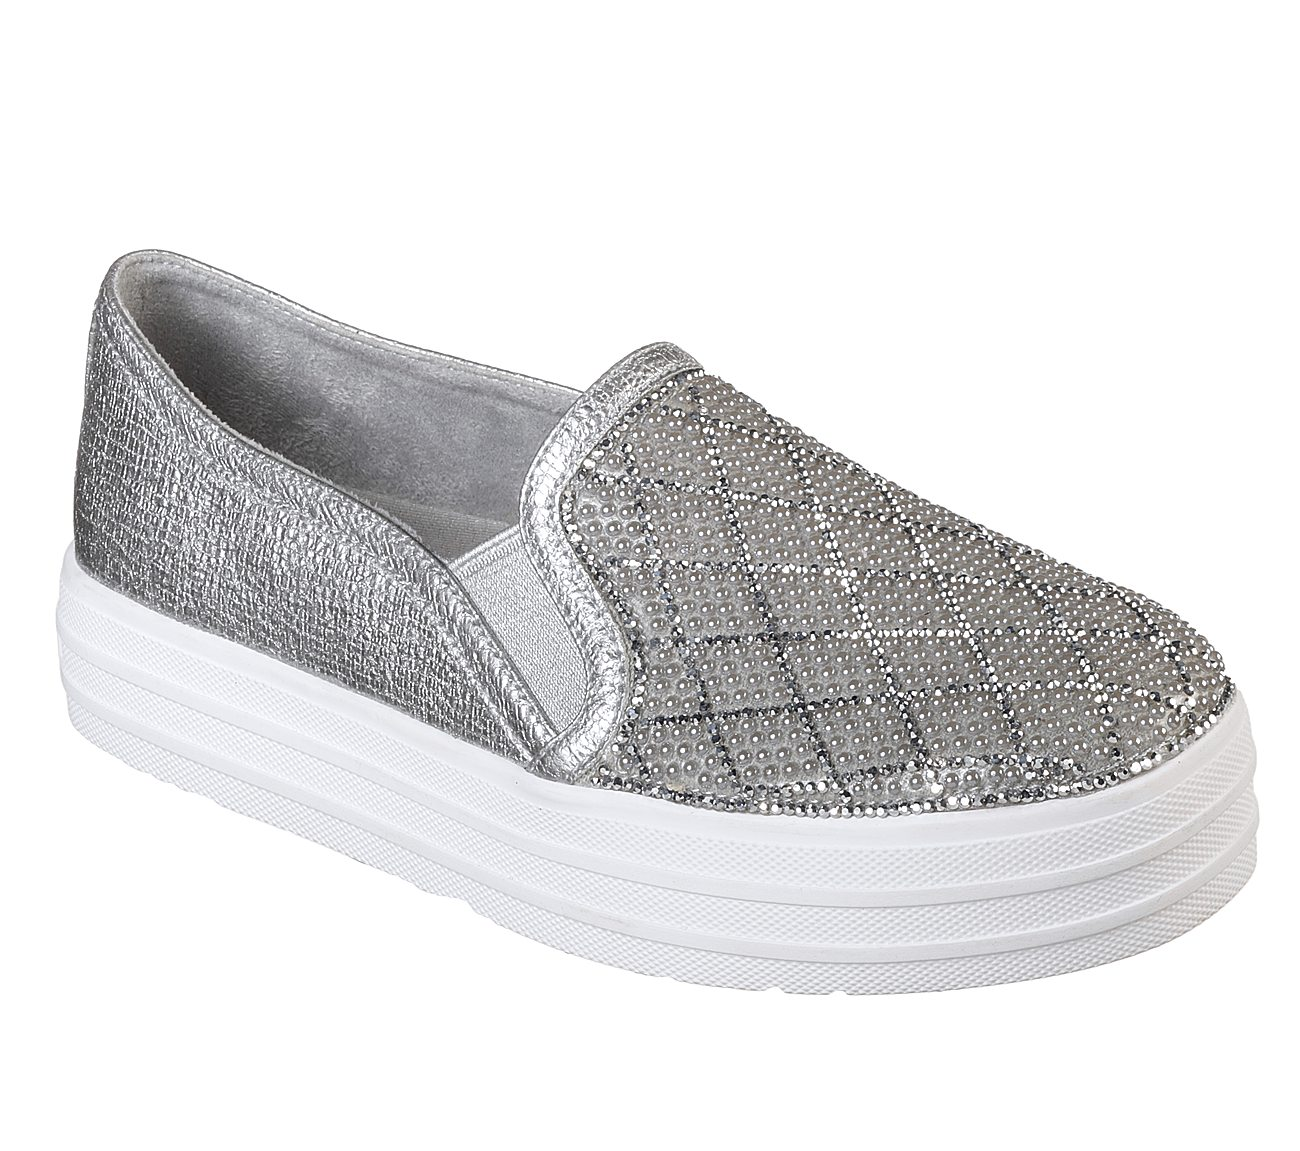 286ed9b31d5 Buy SKECHERS Double Up - Diamond Dancer Slip-On Sneakers Shoes only ...